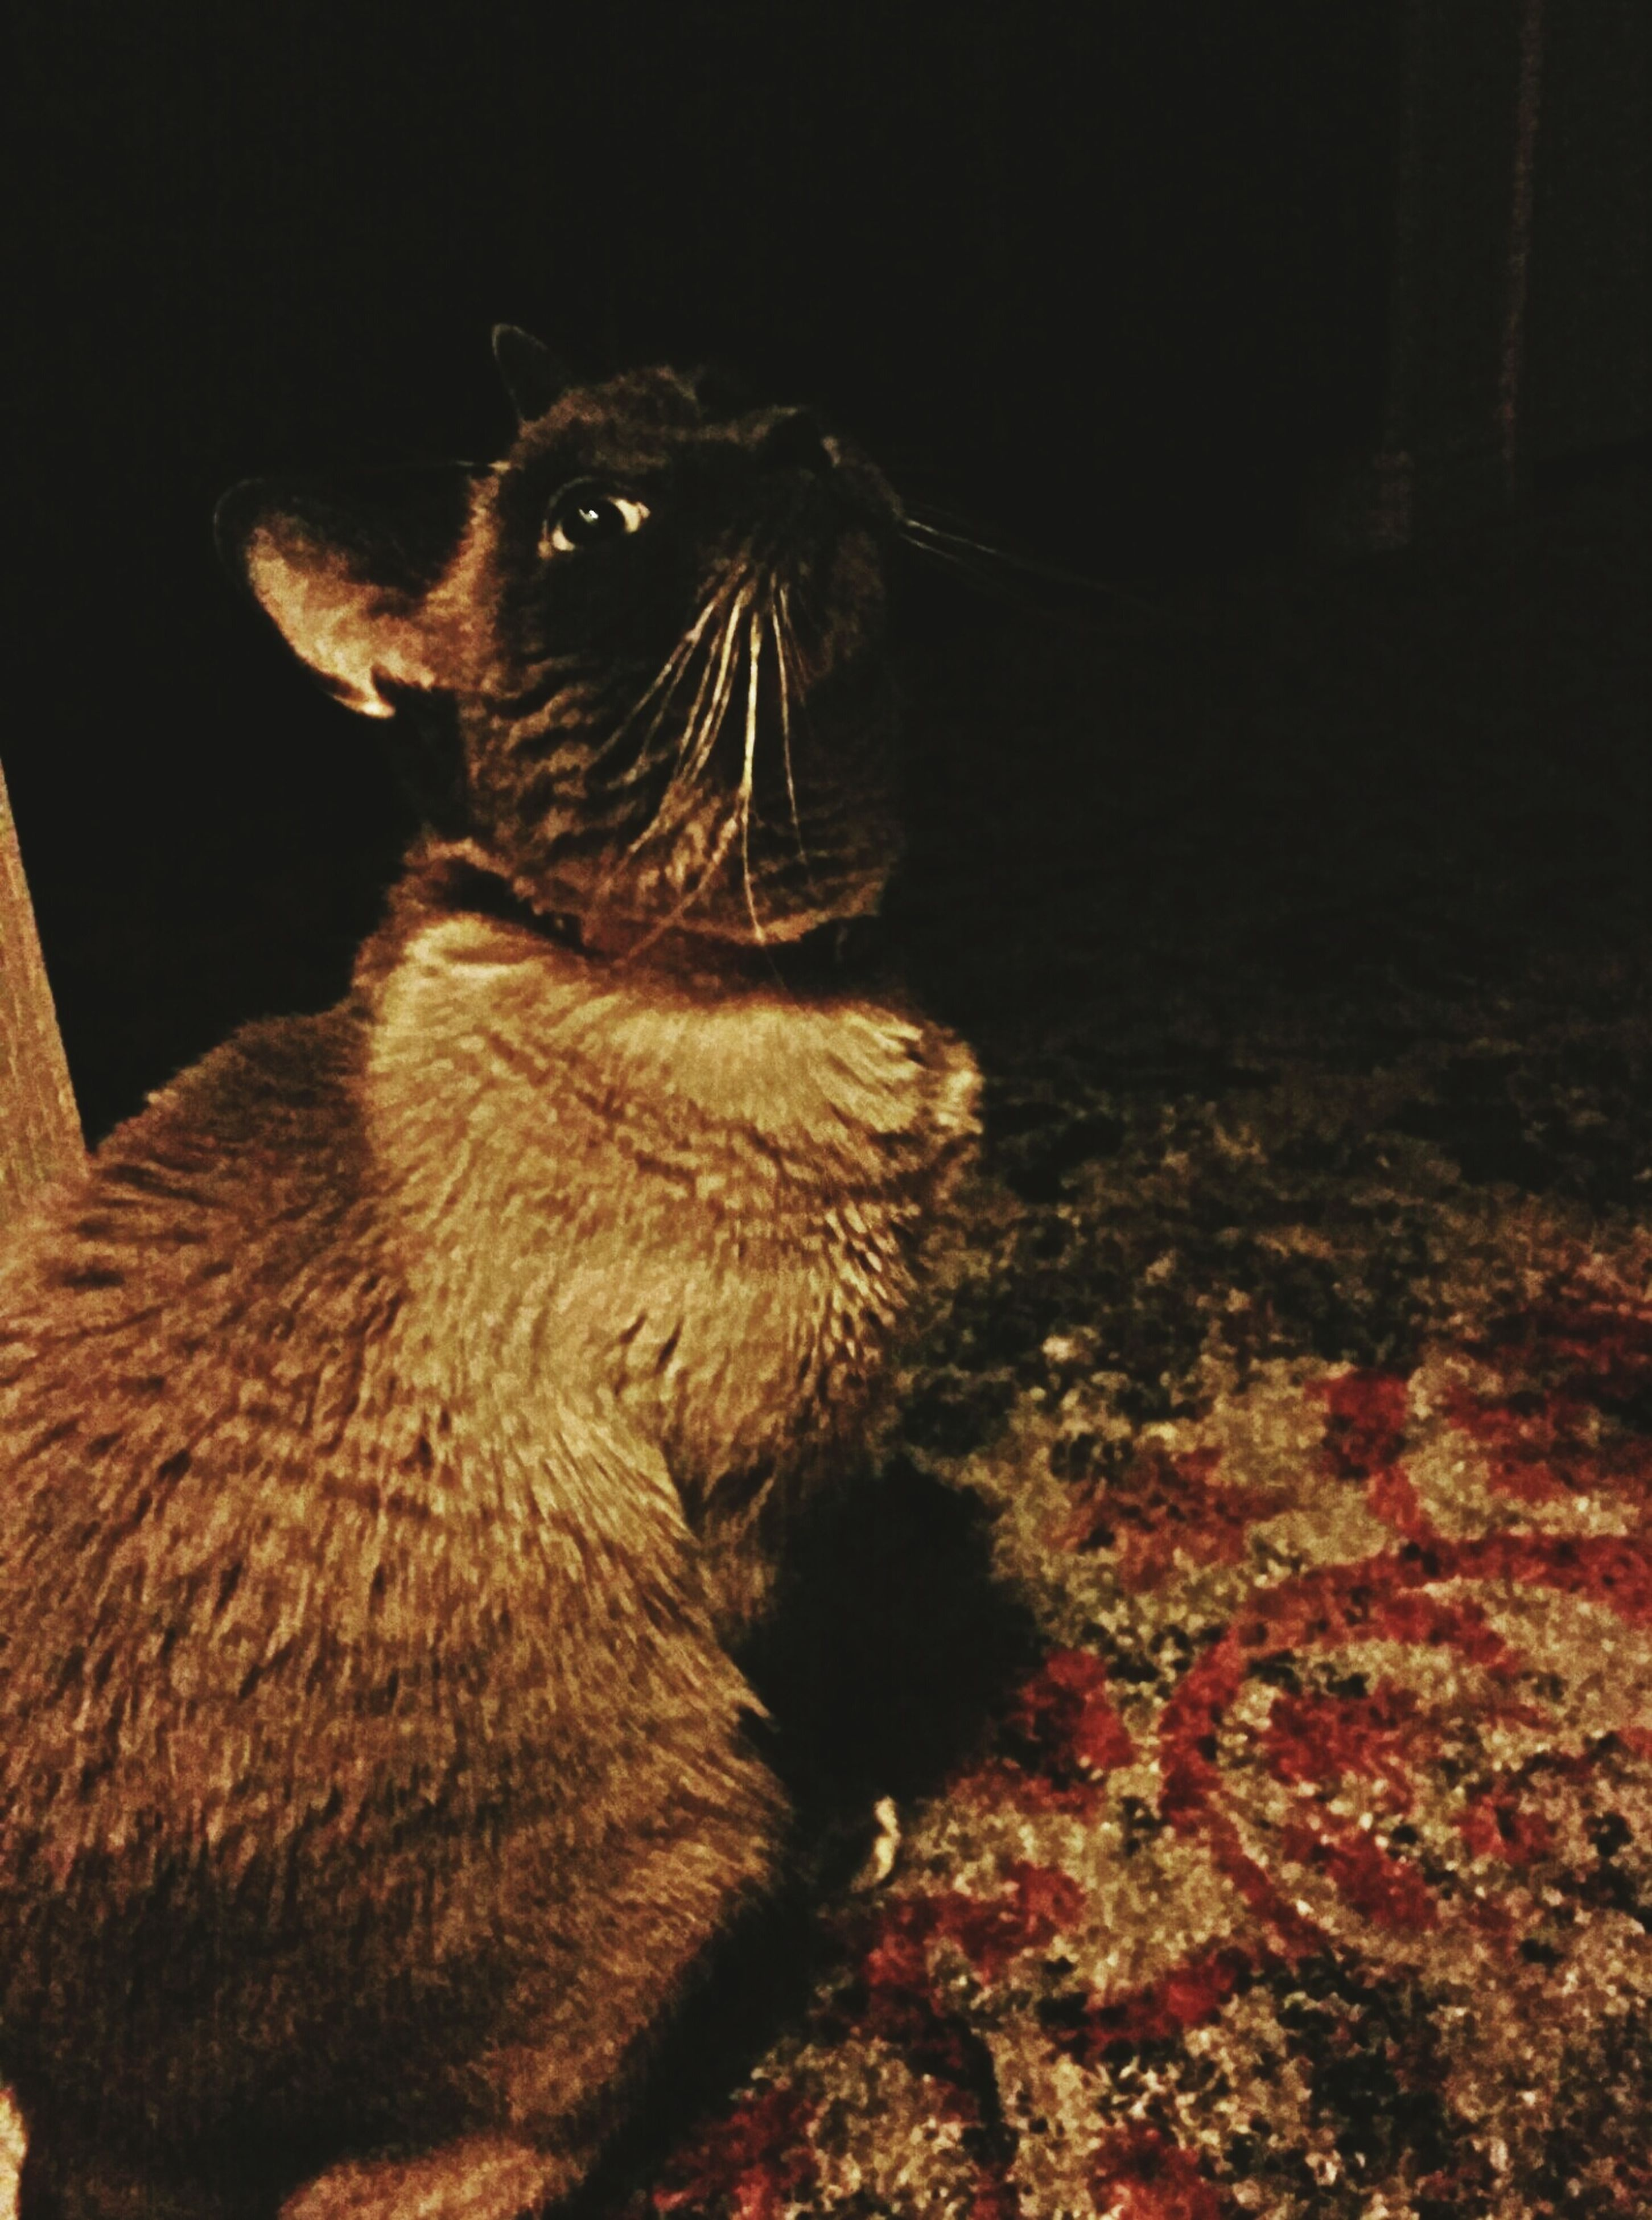 animal themes, one animal, mammal, domestic animals, pets, domestic cat, indoors, cat, feline, whisker, close-up, night, looking away, sitting, animal head, wildlife, relaxation, animals in the wild, no people, zoology